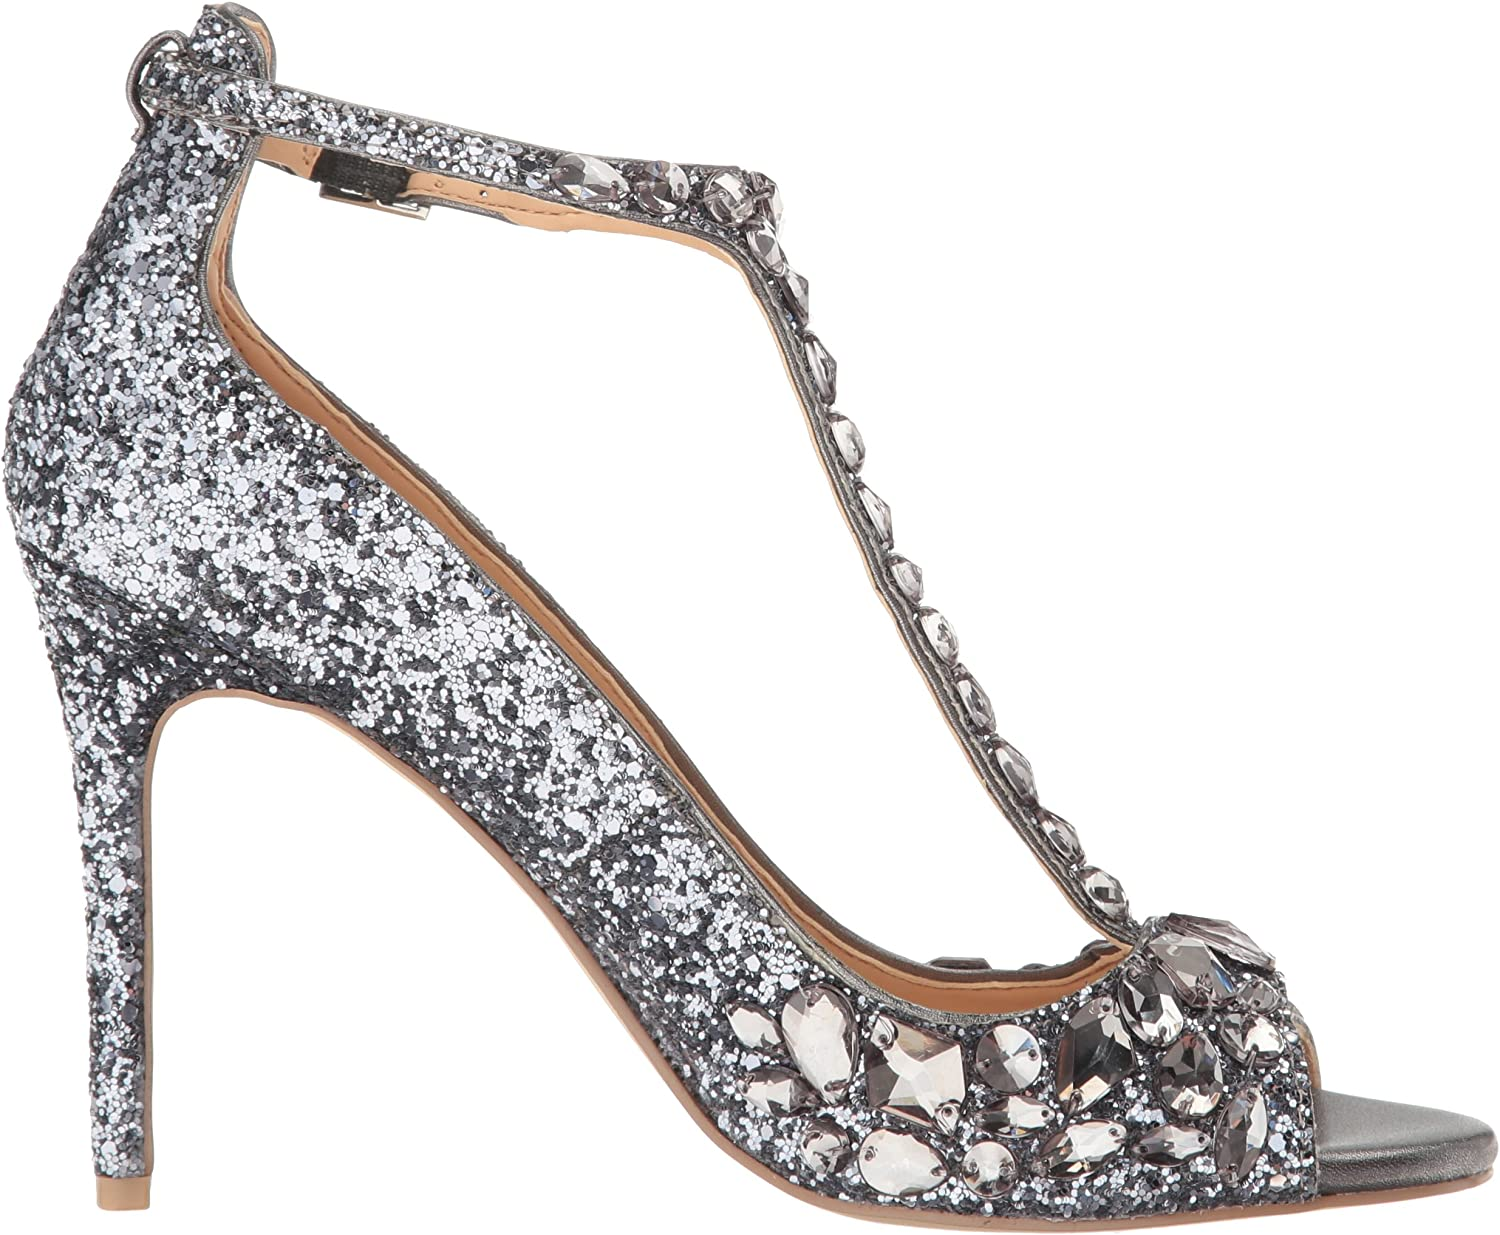 Jewel Badgley Mischka Damen Sandalen, Smokey Smoke Glitter